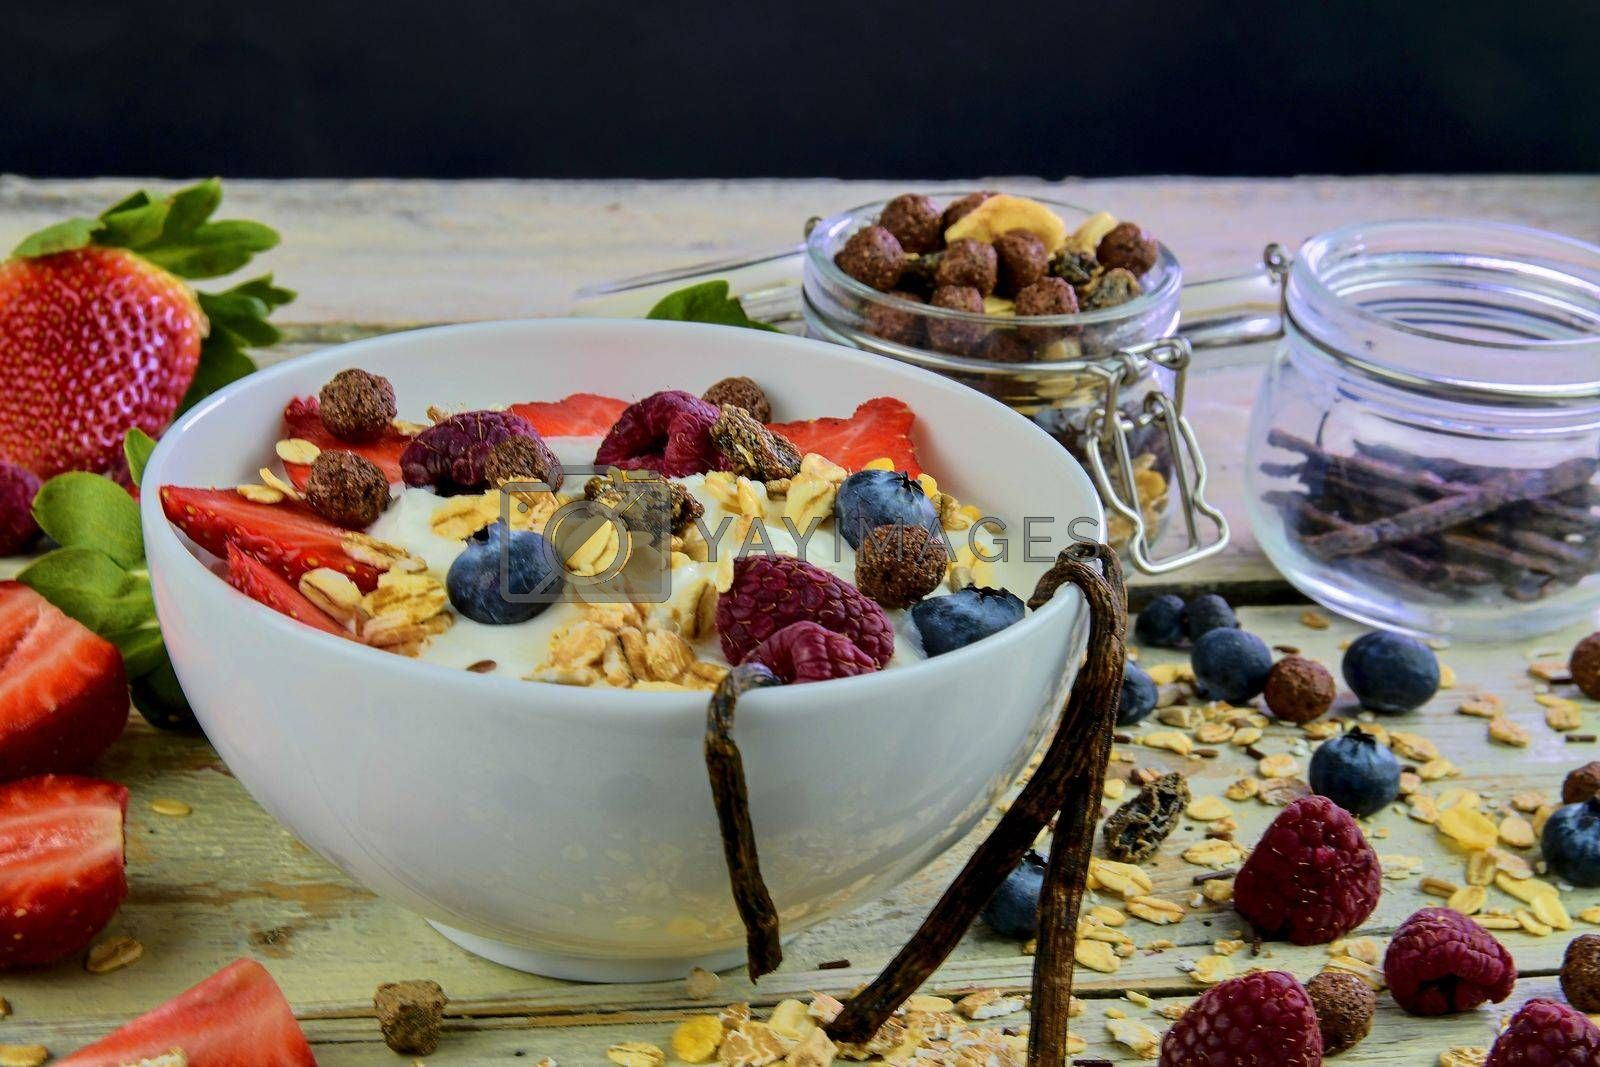 Healthy breakfast, cereal with yoghurt, strawberries, blueberries, raspberries and muesli on wooden rustic background.  Concept of: fitness, diet, wellness and breakfasts.